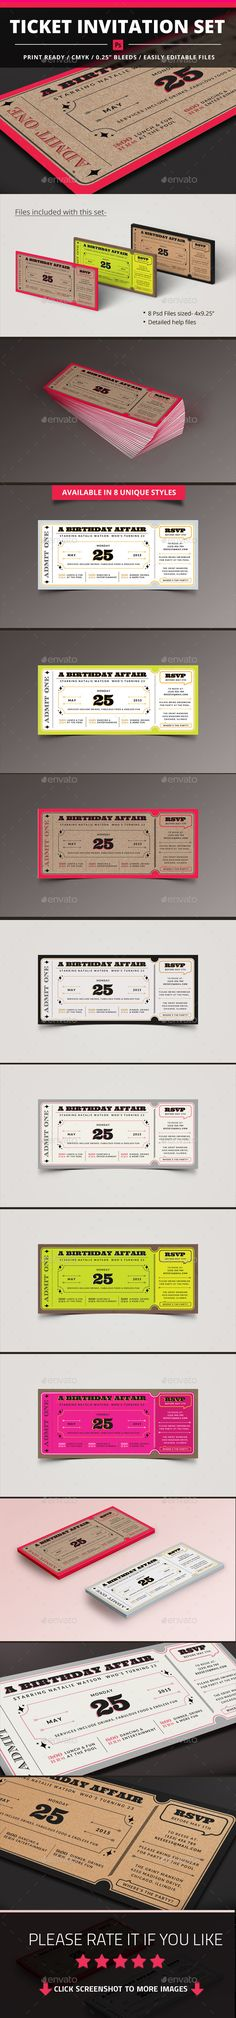 Ticket Invitation Set Template #design Download: http://graphicriver.net/item/ticket-invitation-set/11303106?ref=ksioks